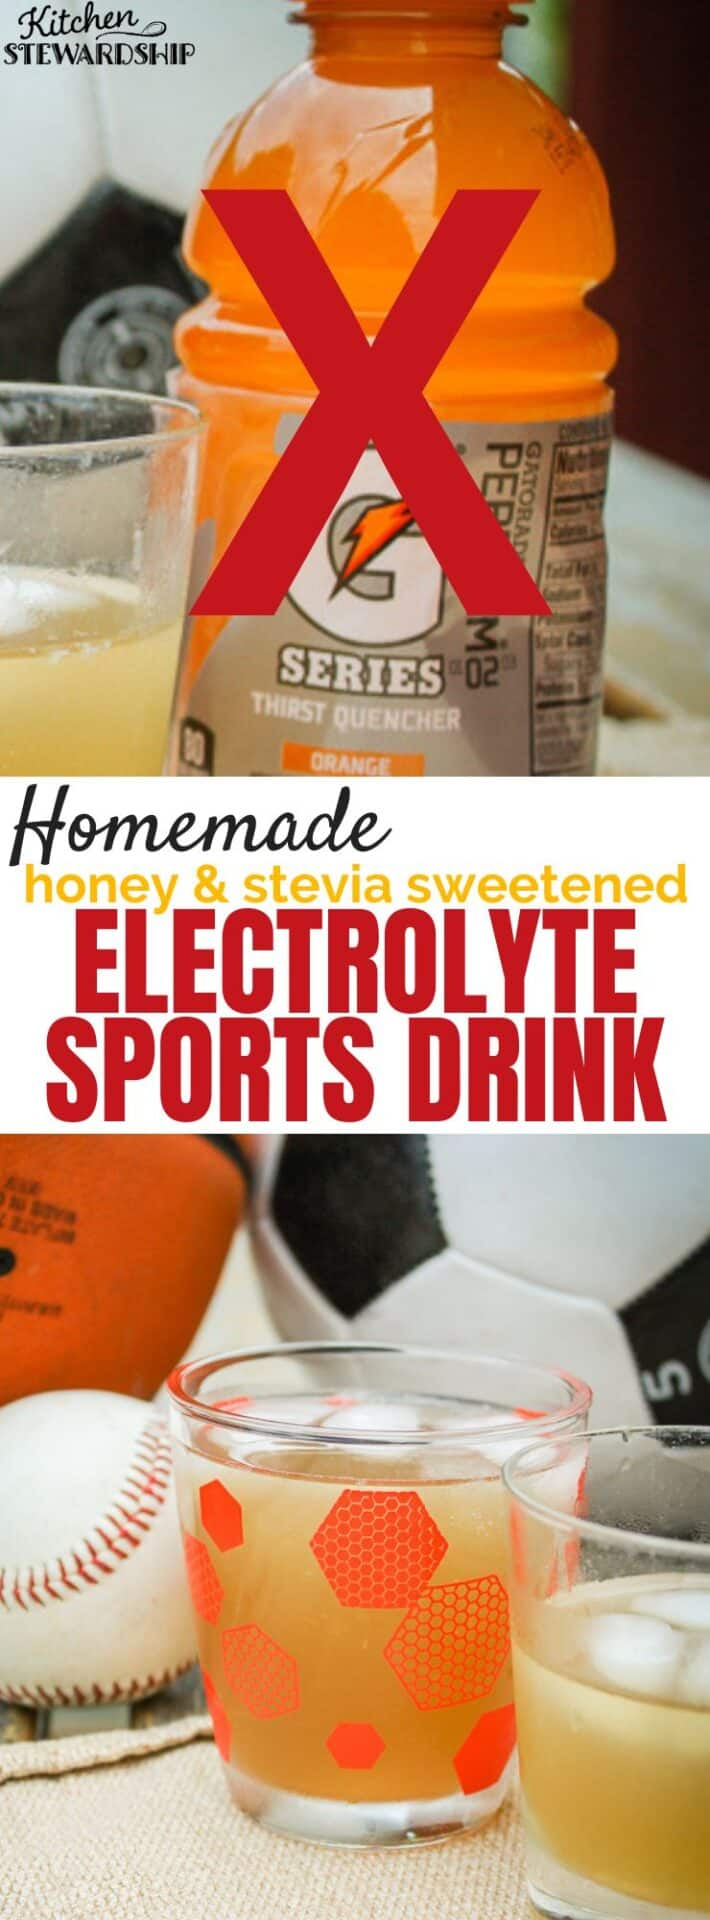 Homemade electrolyte sports drink